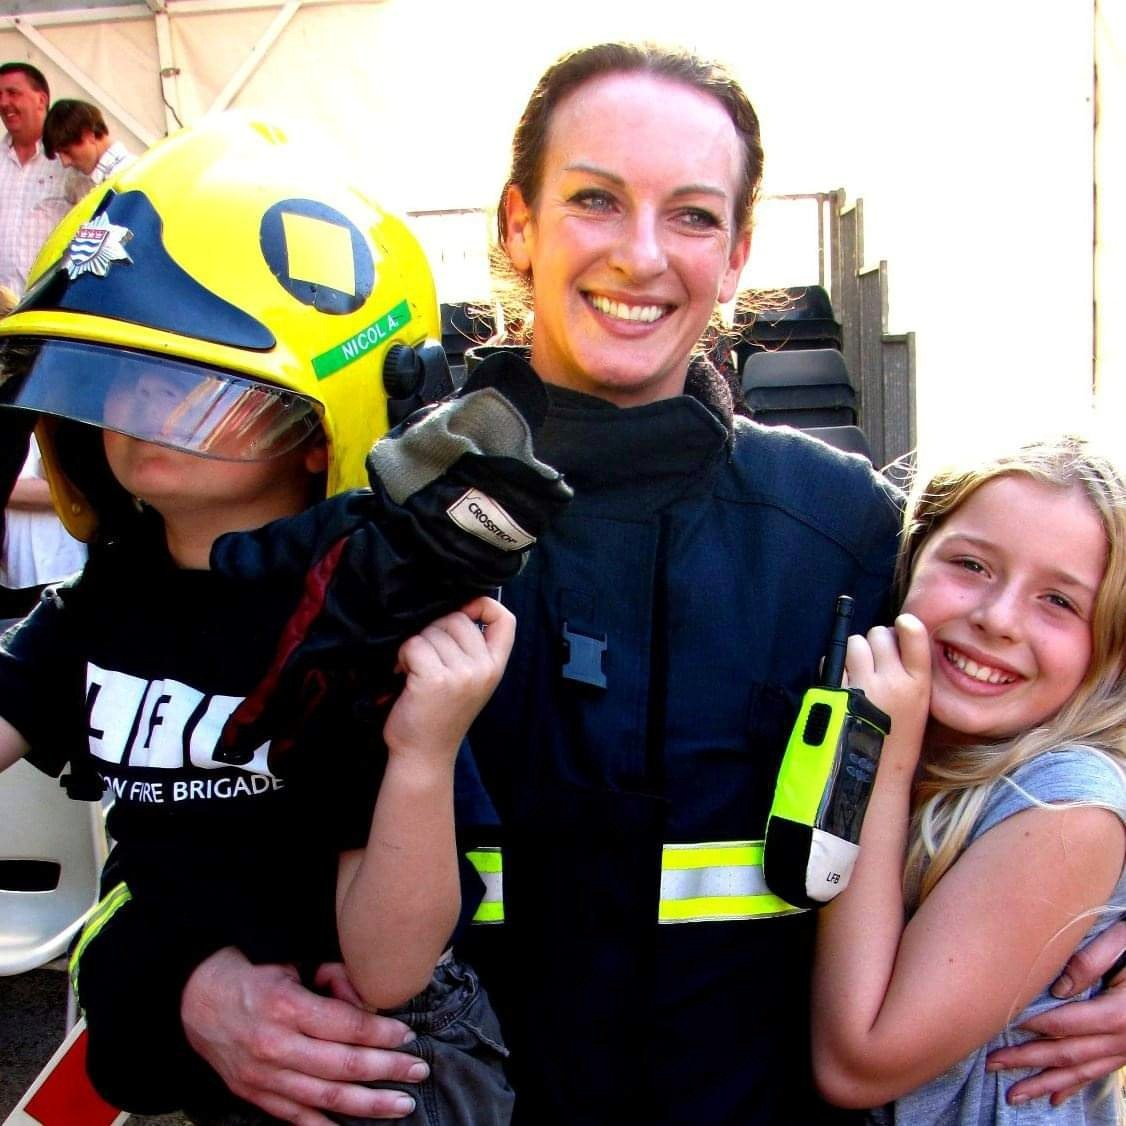 I decided at 38 to apply to become a firefighter  It took me 2 years. I was so driven because I wanted to make a difference  Here I am with my kids, aged 40 & I'm one of the oldest women to get into the LFB  I fought for & I earned my place here fair & square  #NewProfilePic